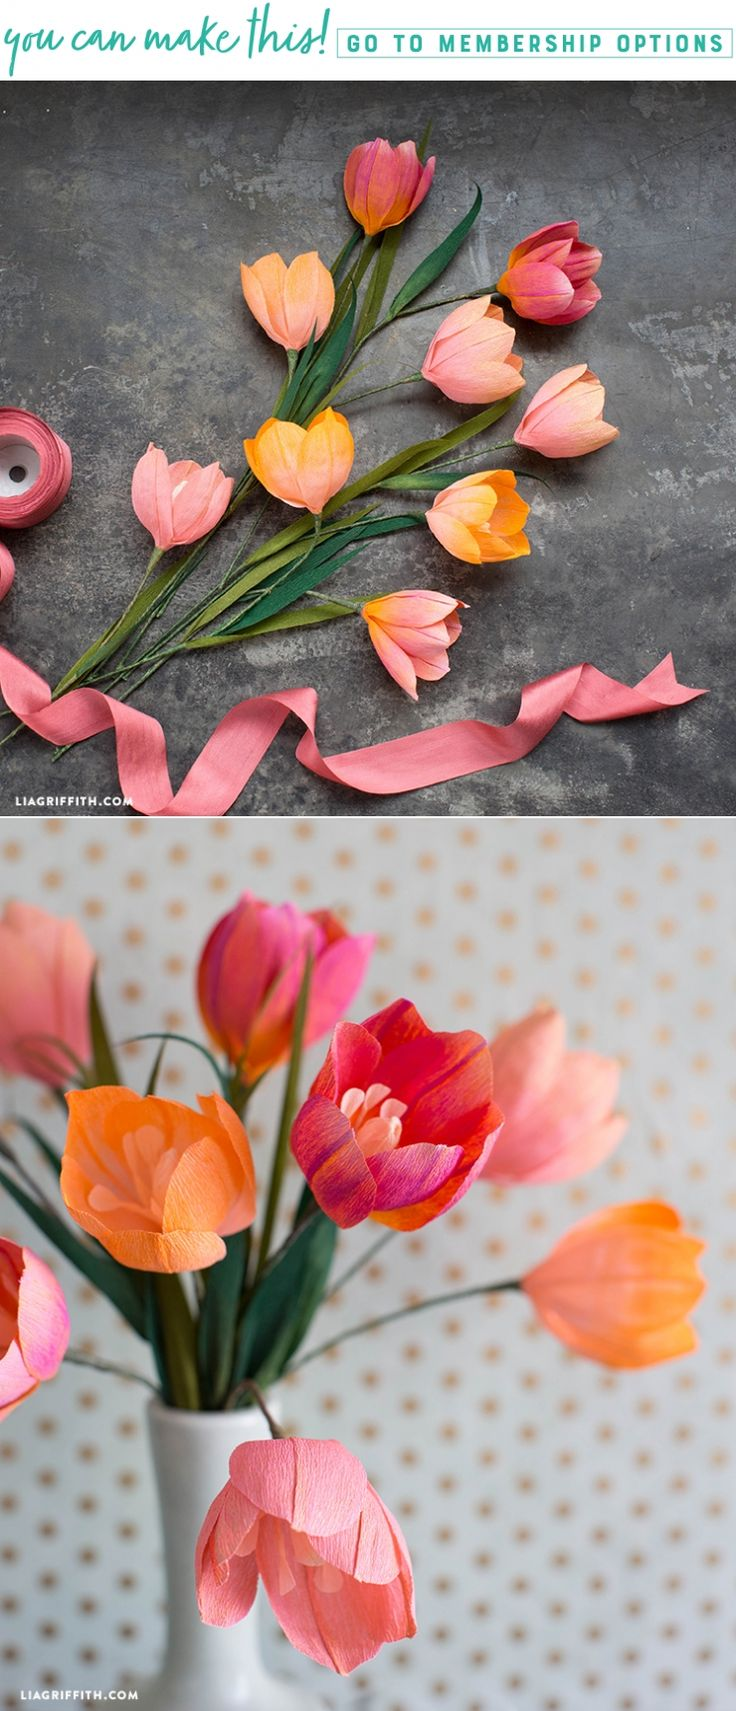 Going Dutch ✨These gorgeous paper tulips are the product of a winning combination - our extra fine crepe paper and pan pastels that make the colors pop. We love how these beauties reflect the light and stun from every angle. https://liagriffith.com/pastel-painted-crepe-paper-tulips/ * * * #tulip #crepepaper #crepepaperflowers #crepepaperrevival #tulips #pastel #pastels #panpastel #paper #papercut #paperlove #paperflower #paperflowers #spring #easter #diycraft #diy #diyidea #diyideas…